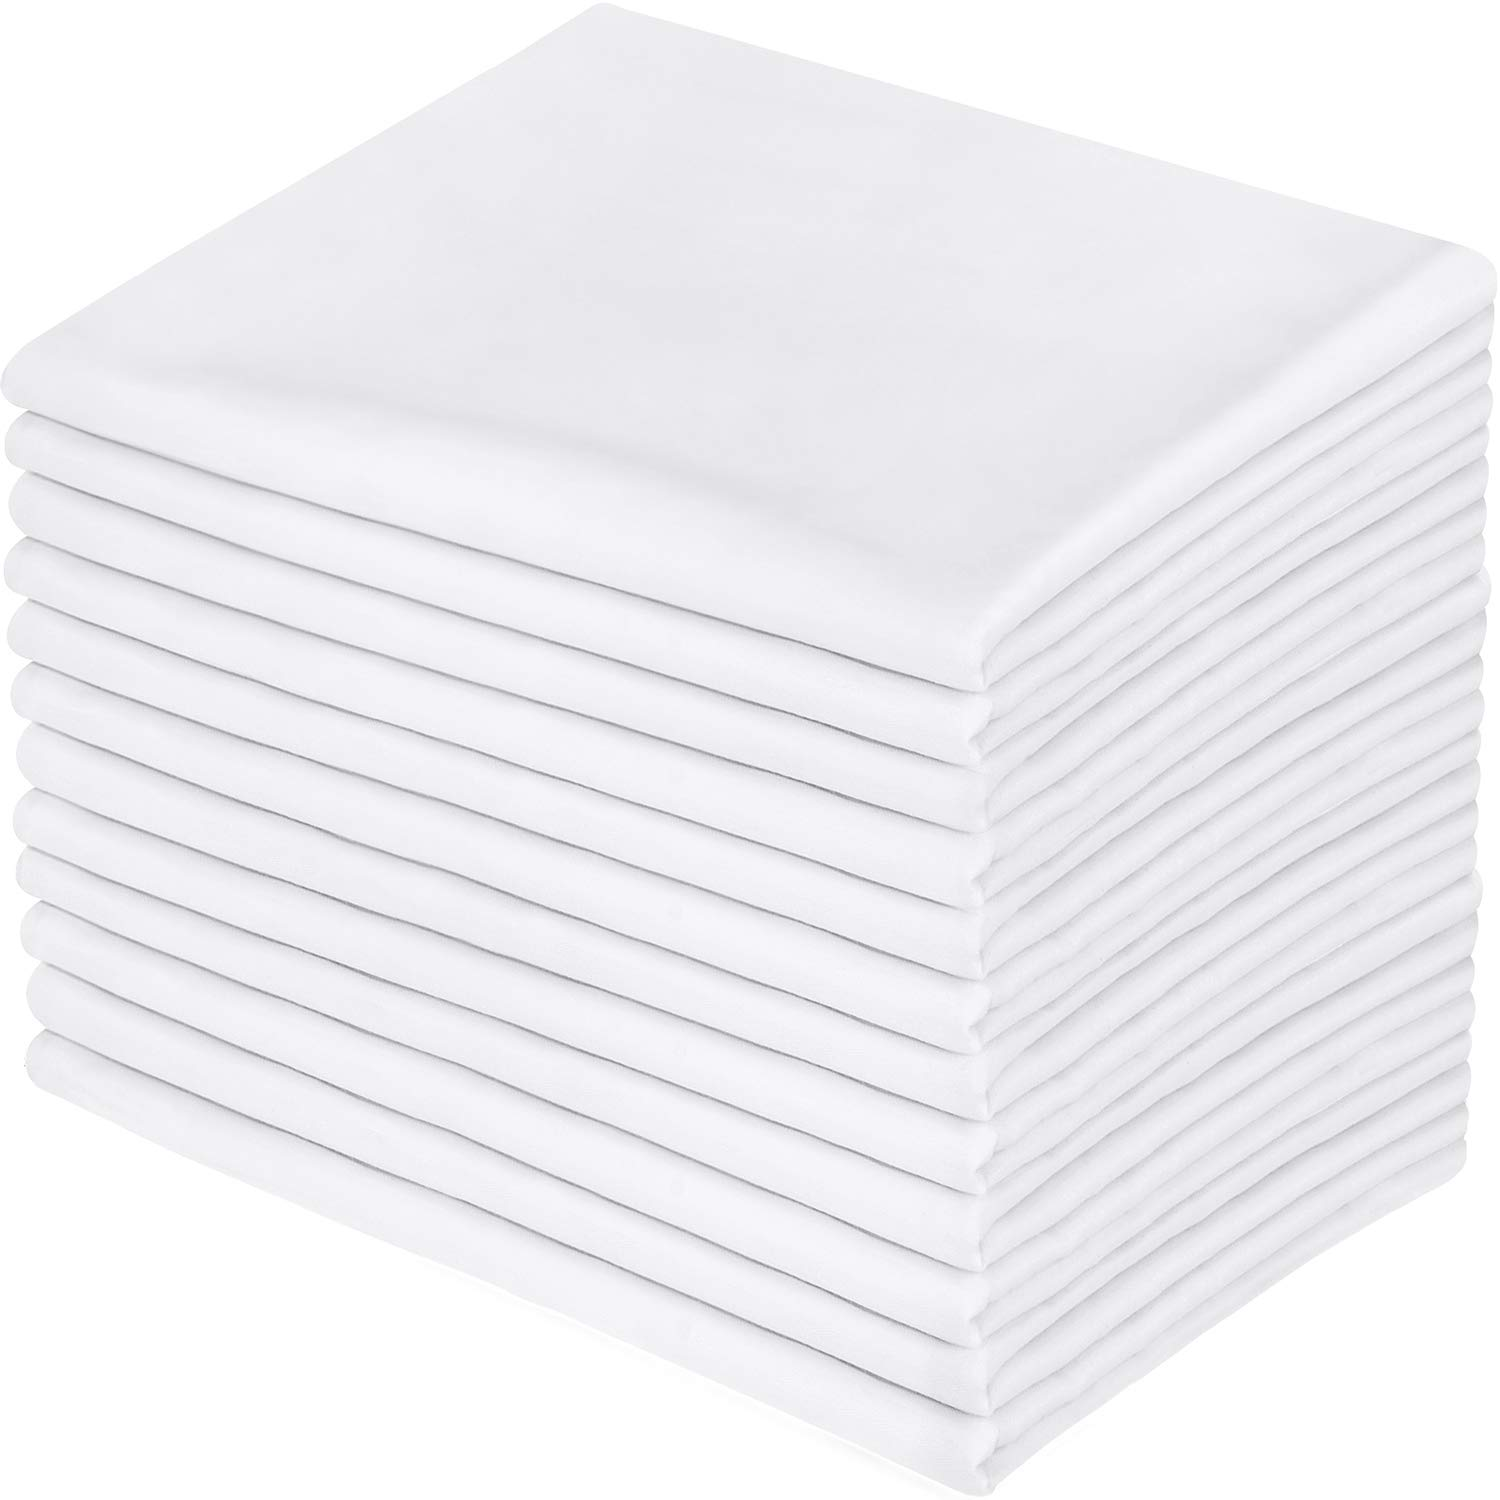 Utopia Bedding Cotton Stitched Pillowcases Pack of 12 - Hotel Quality Pillow Covers (White)